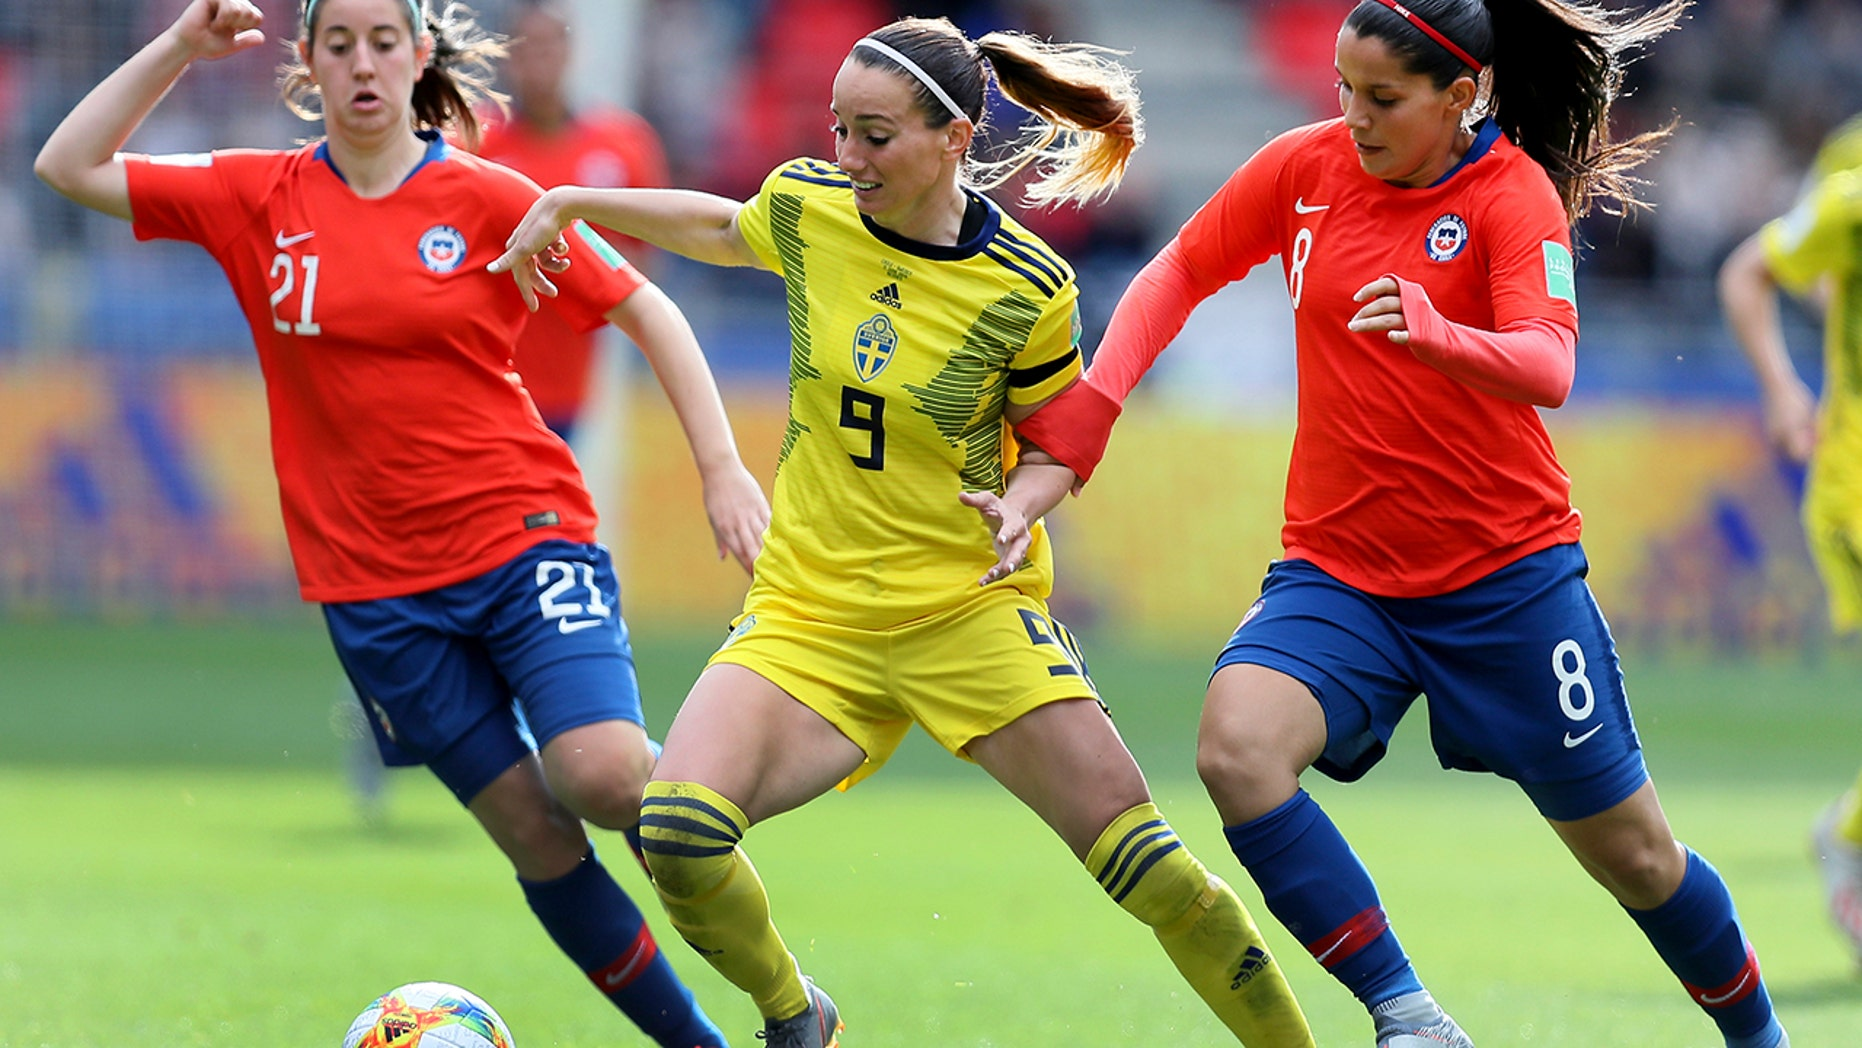 Sweden's Kosovare Asllani, center, and Chile's Karen Araya, right, challenge for the ball during the Women's World Cup Group F soccer match between Chile and Sweden at the Roazhon Park in Rennes, France, Tuesday, June 11, 2019. (AP Photo/David Vincent)